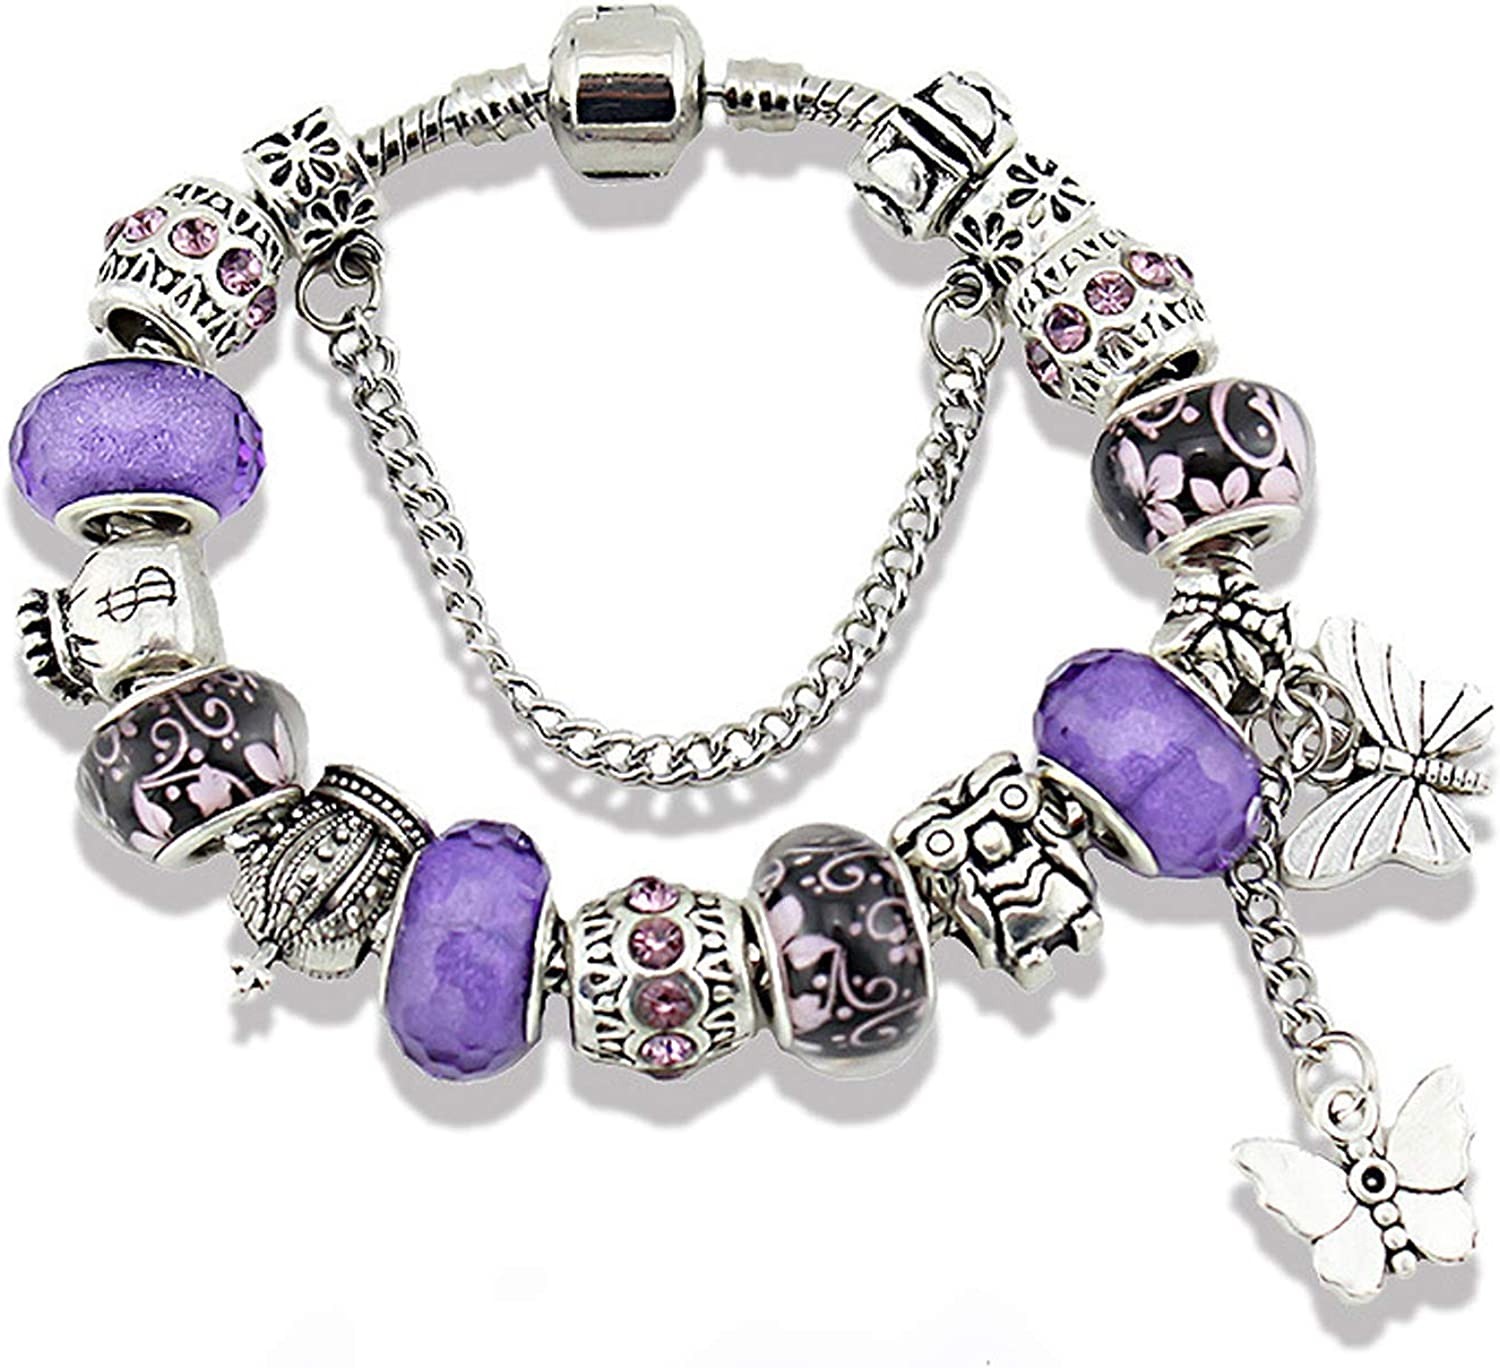 Unicorns Gifts for Girls Charms Bracelet for Girls and Women Murano Glass Beads Butterfly Flower Charms Bracelets